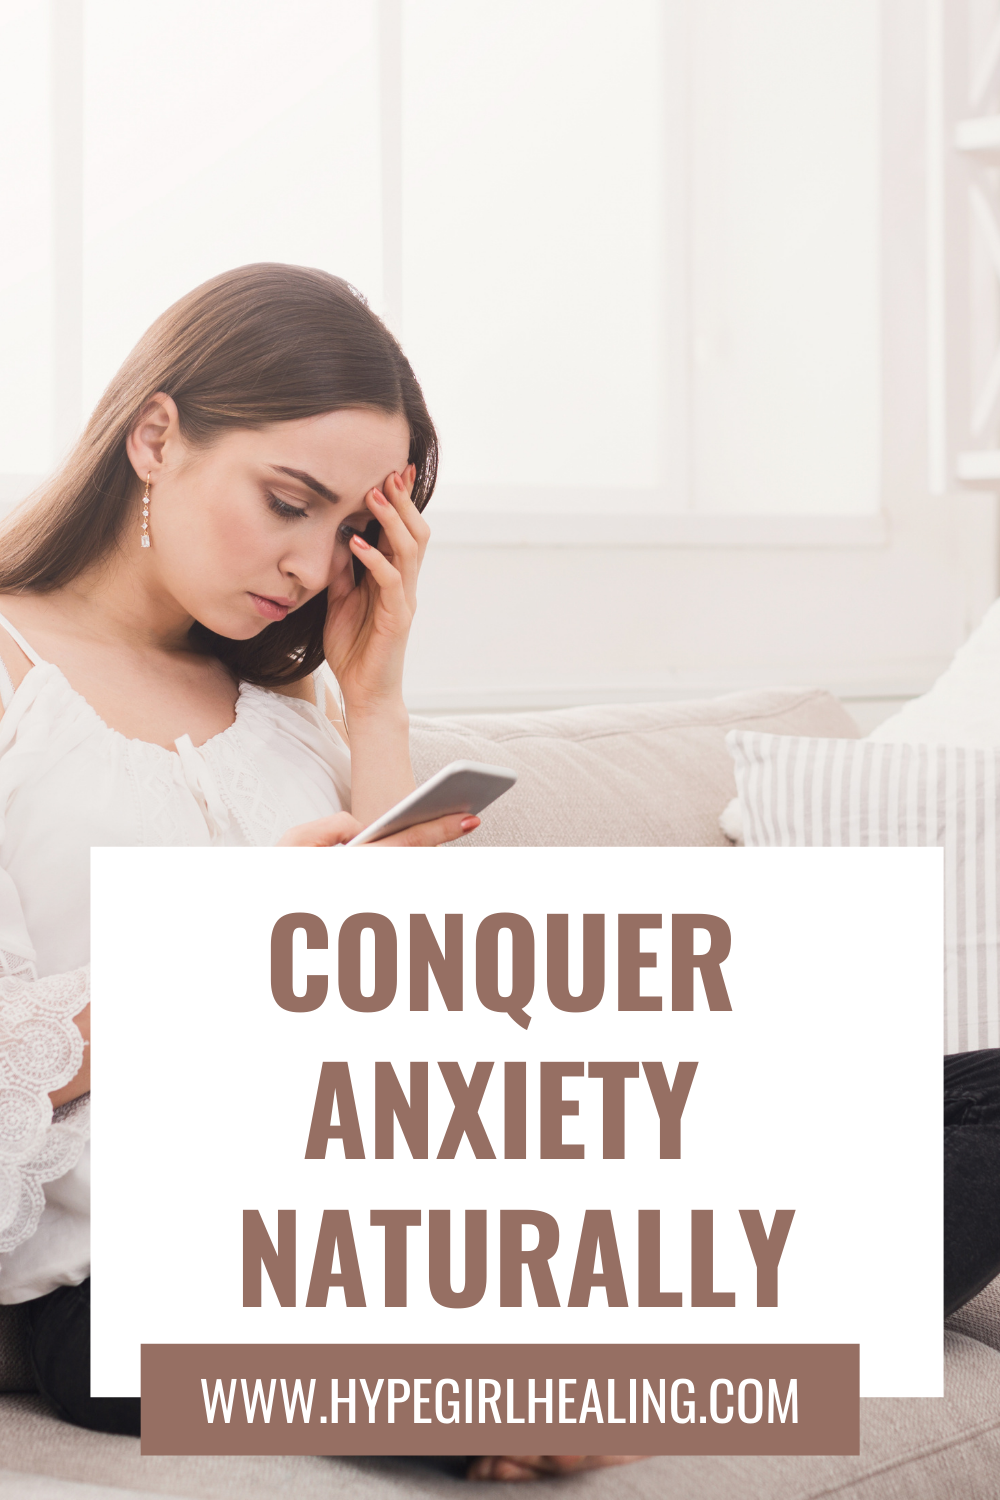 Girl sitting on couch looking at phone  and hand on forehead, feeling anxiety